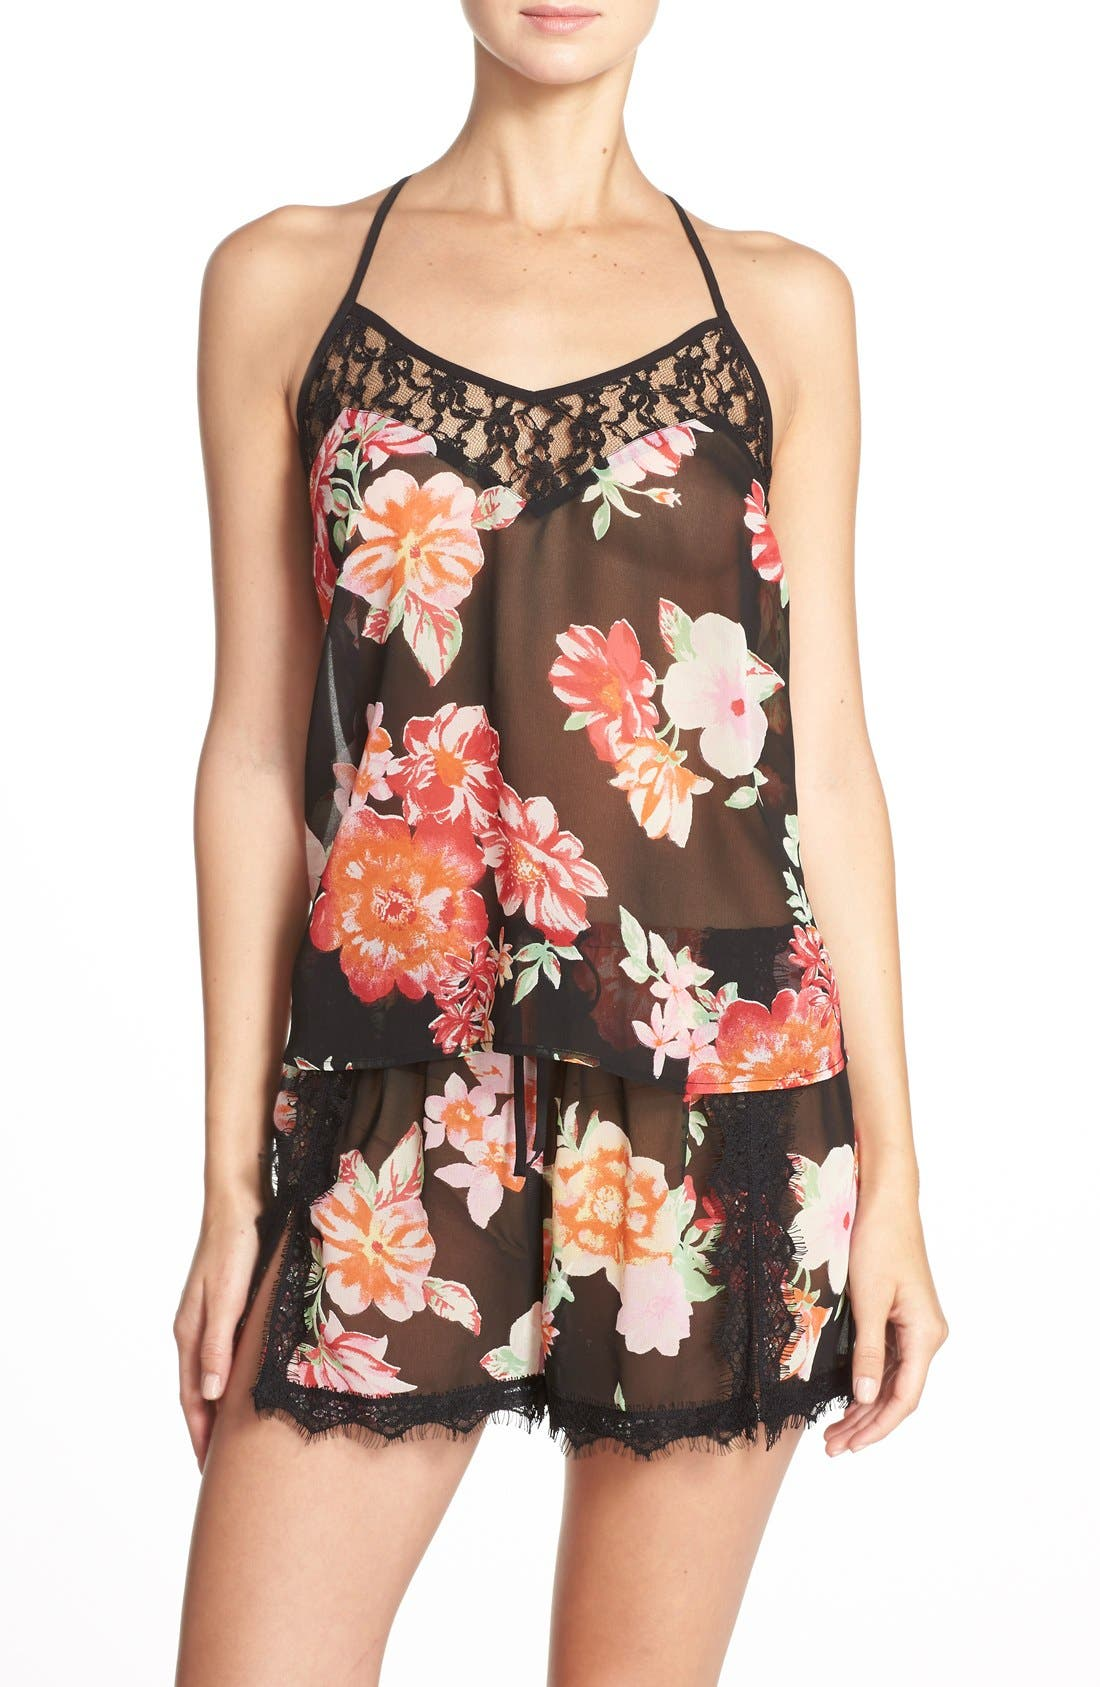 Main Image - Band of Gypsies Racerback Floral Chiffon Camisole